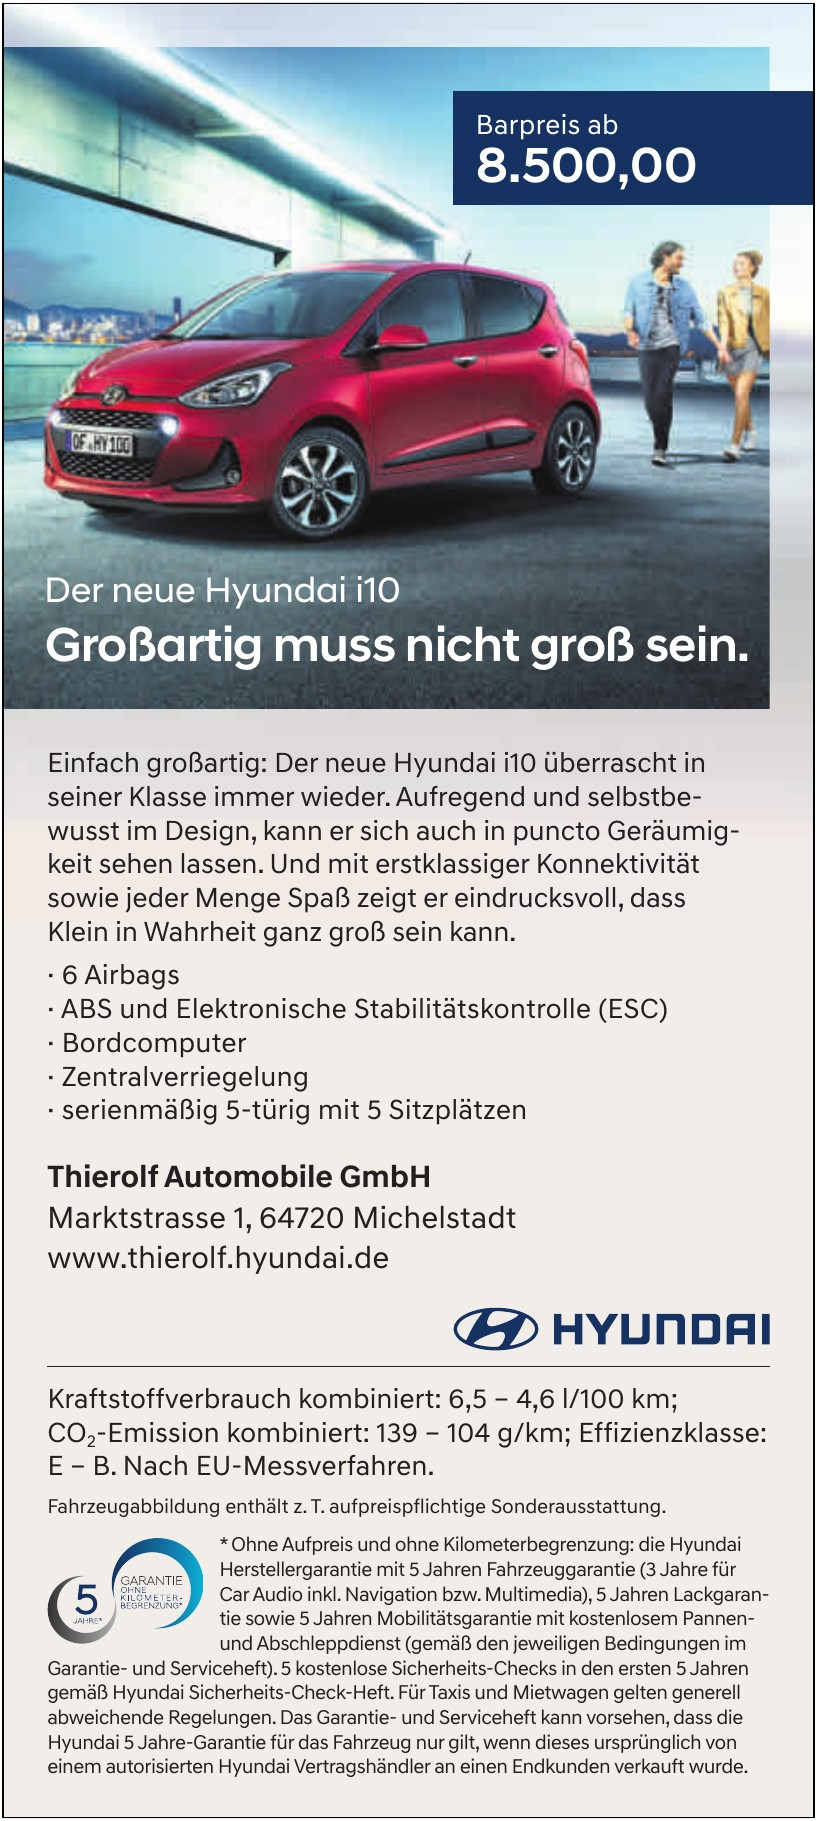 Thierolf Automobile GmbH